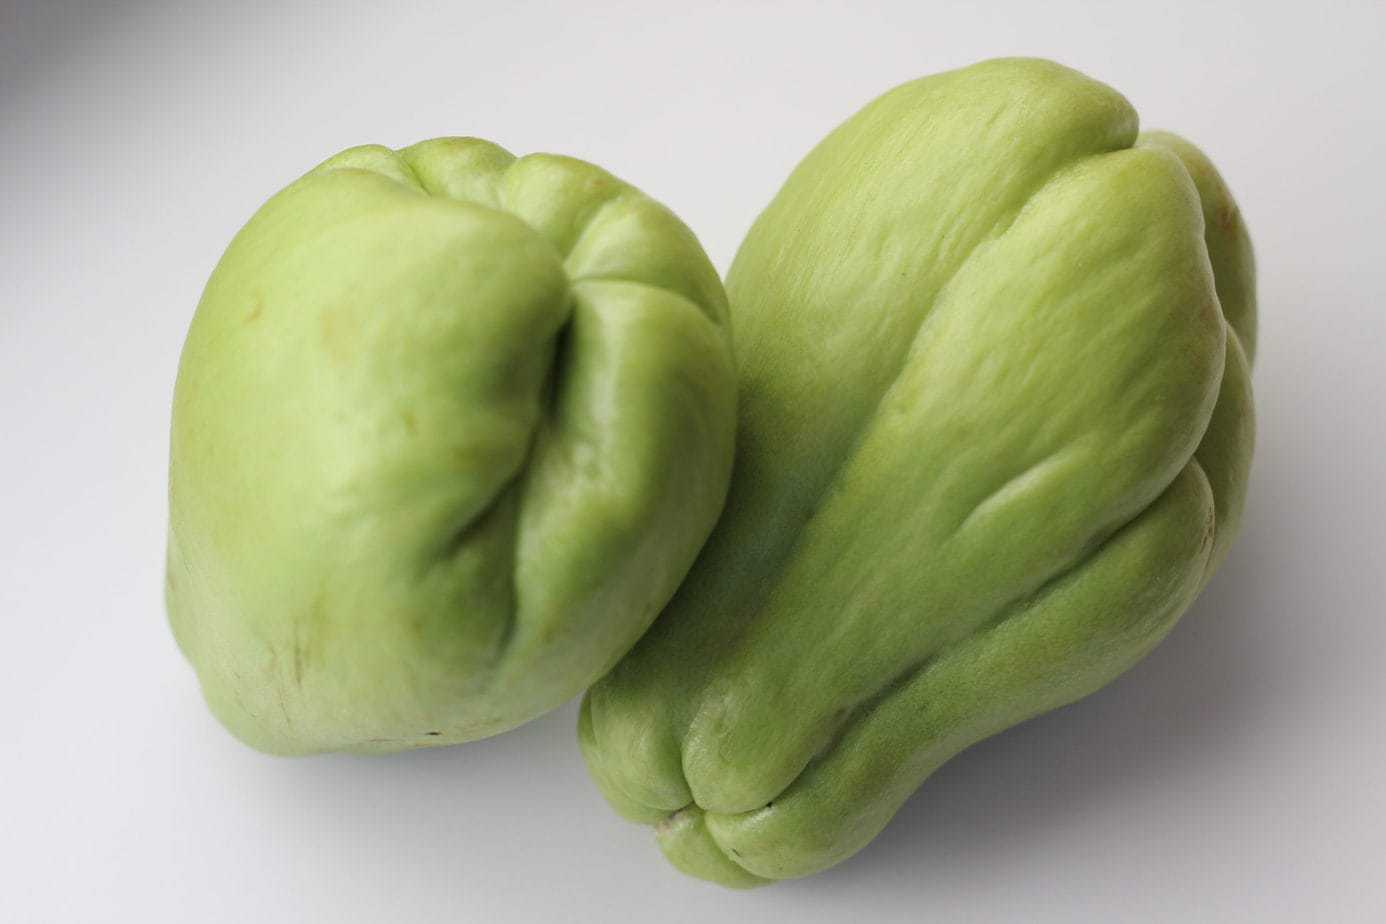 how do you say chayote in english